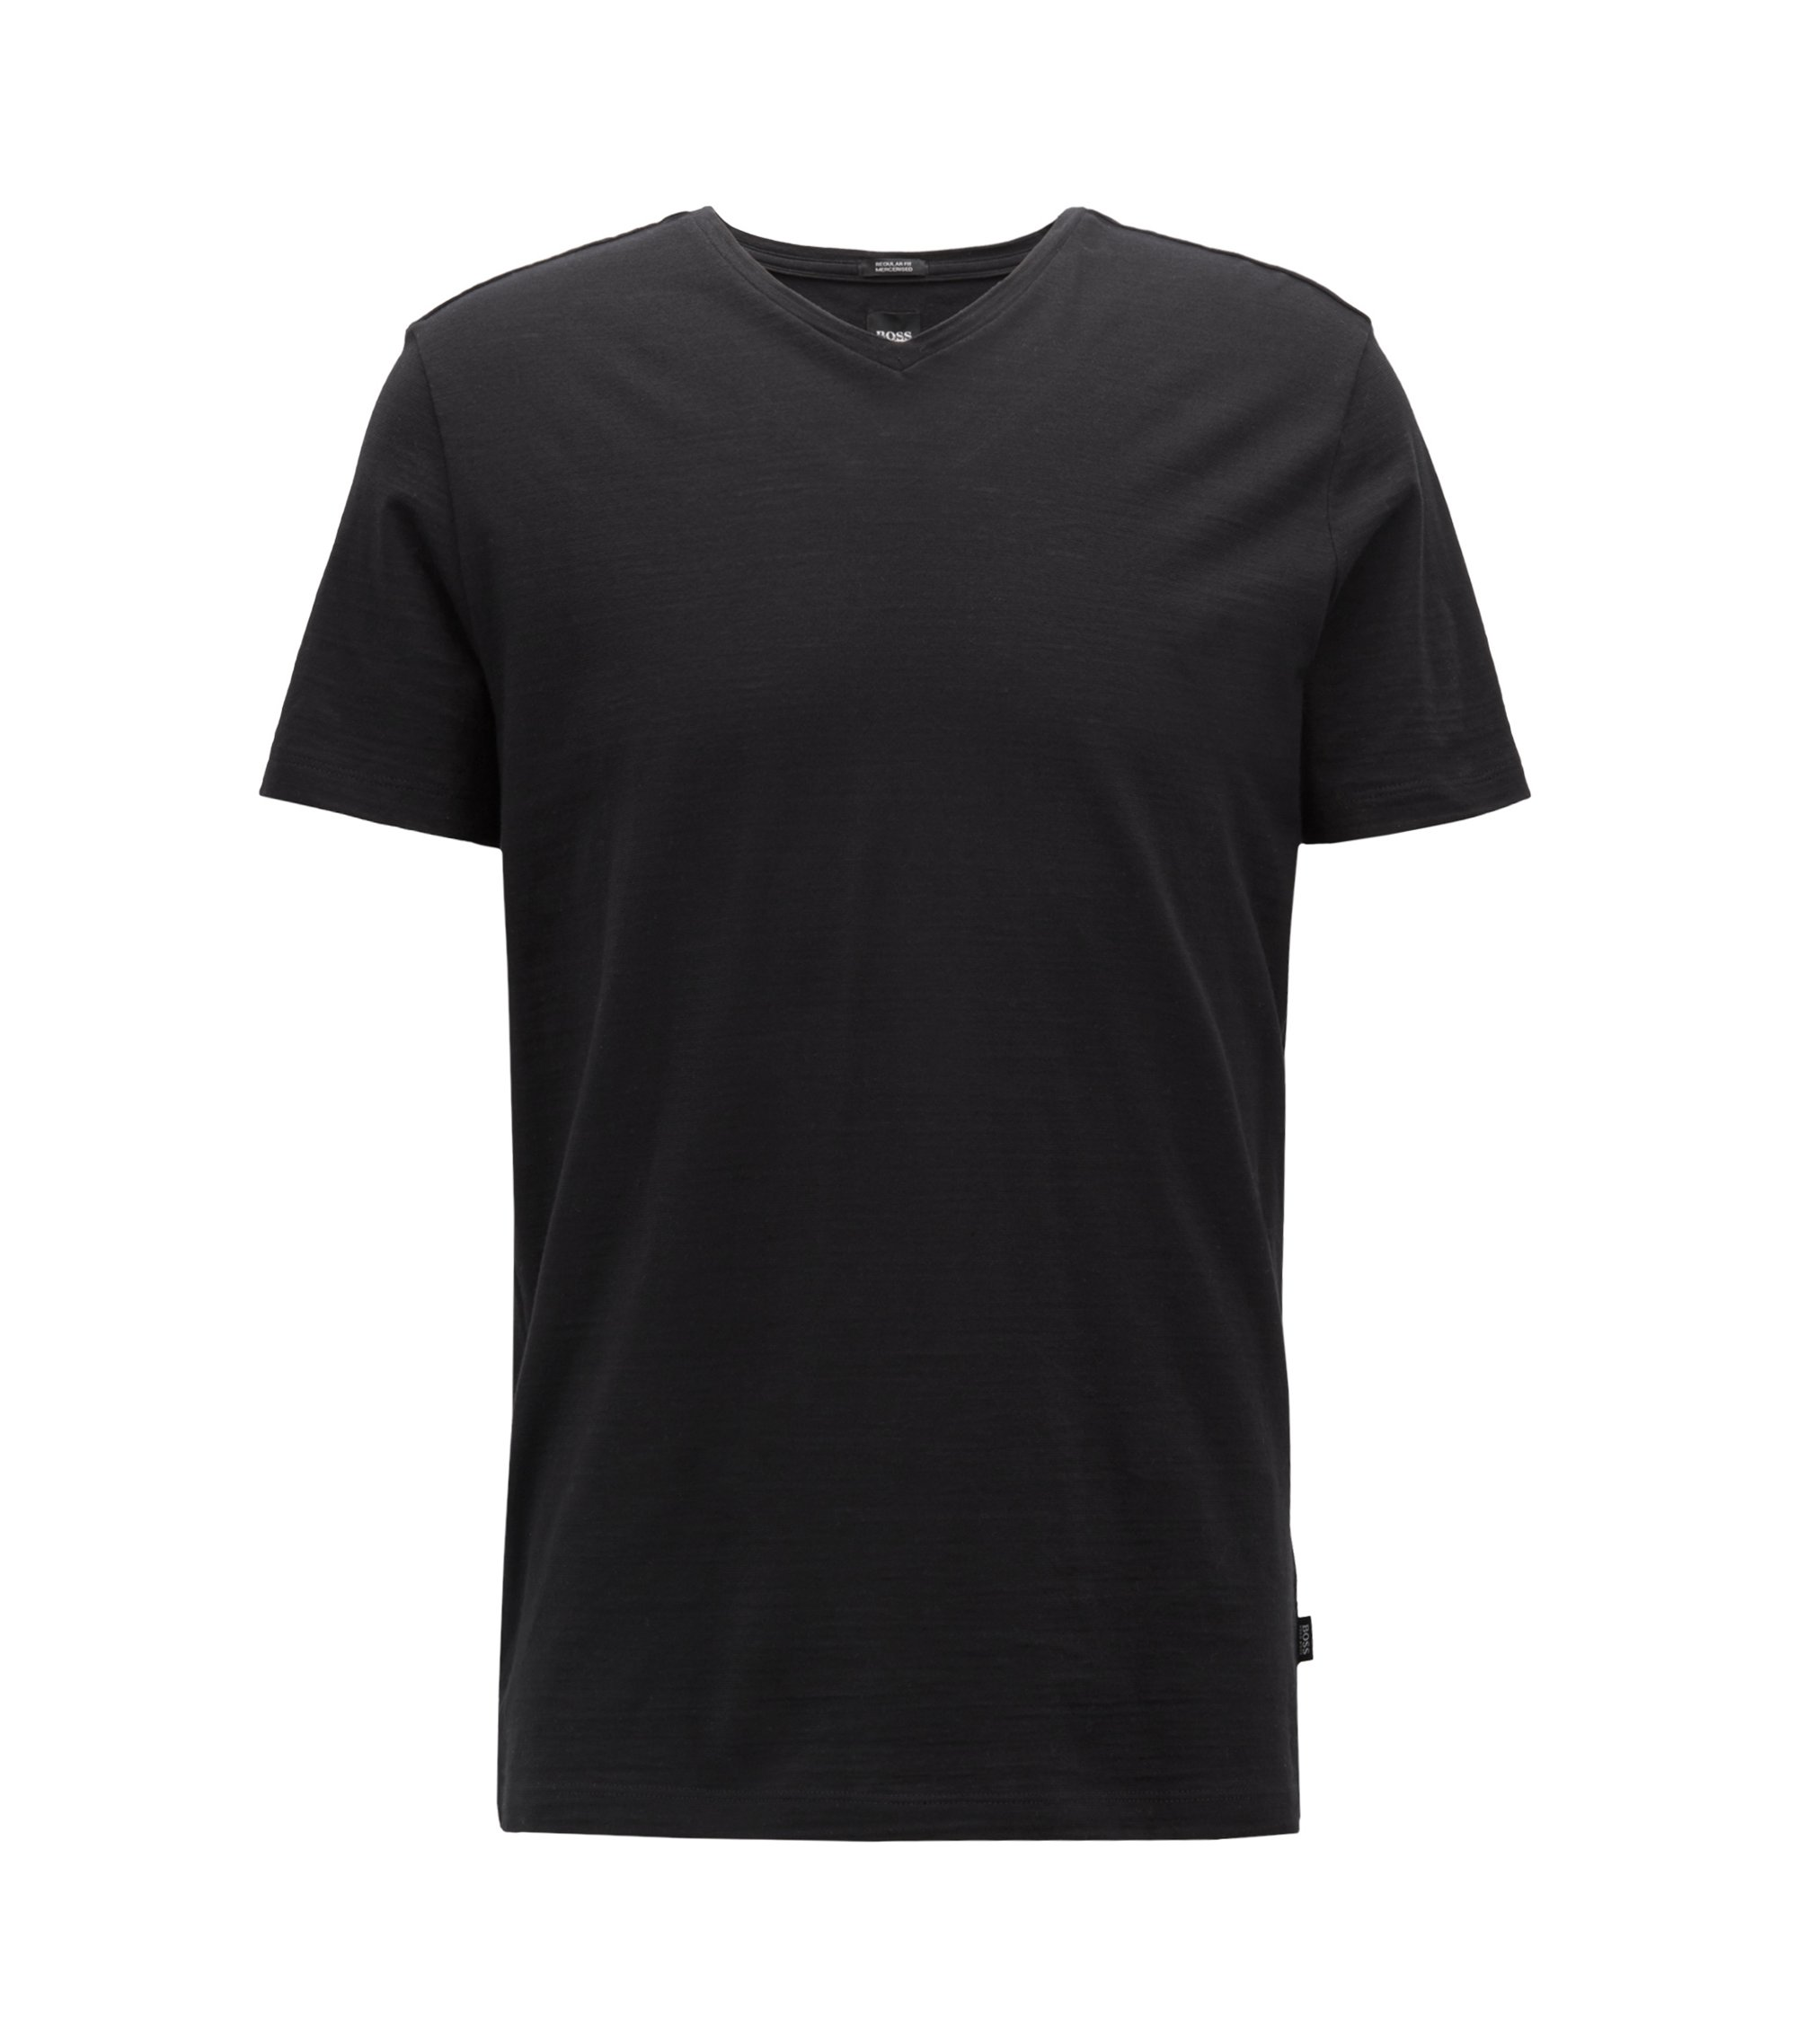 Regular-fit T-shirt in mercerized cotton, Black